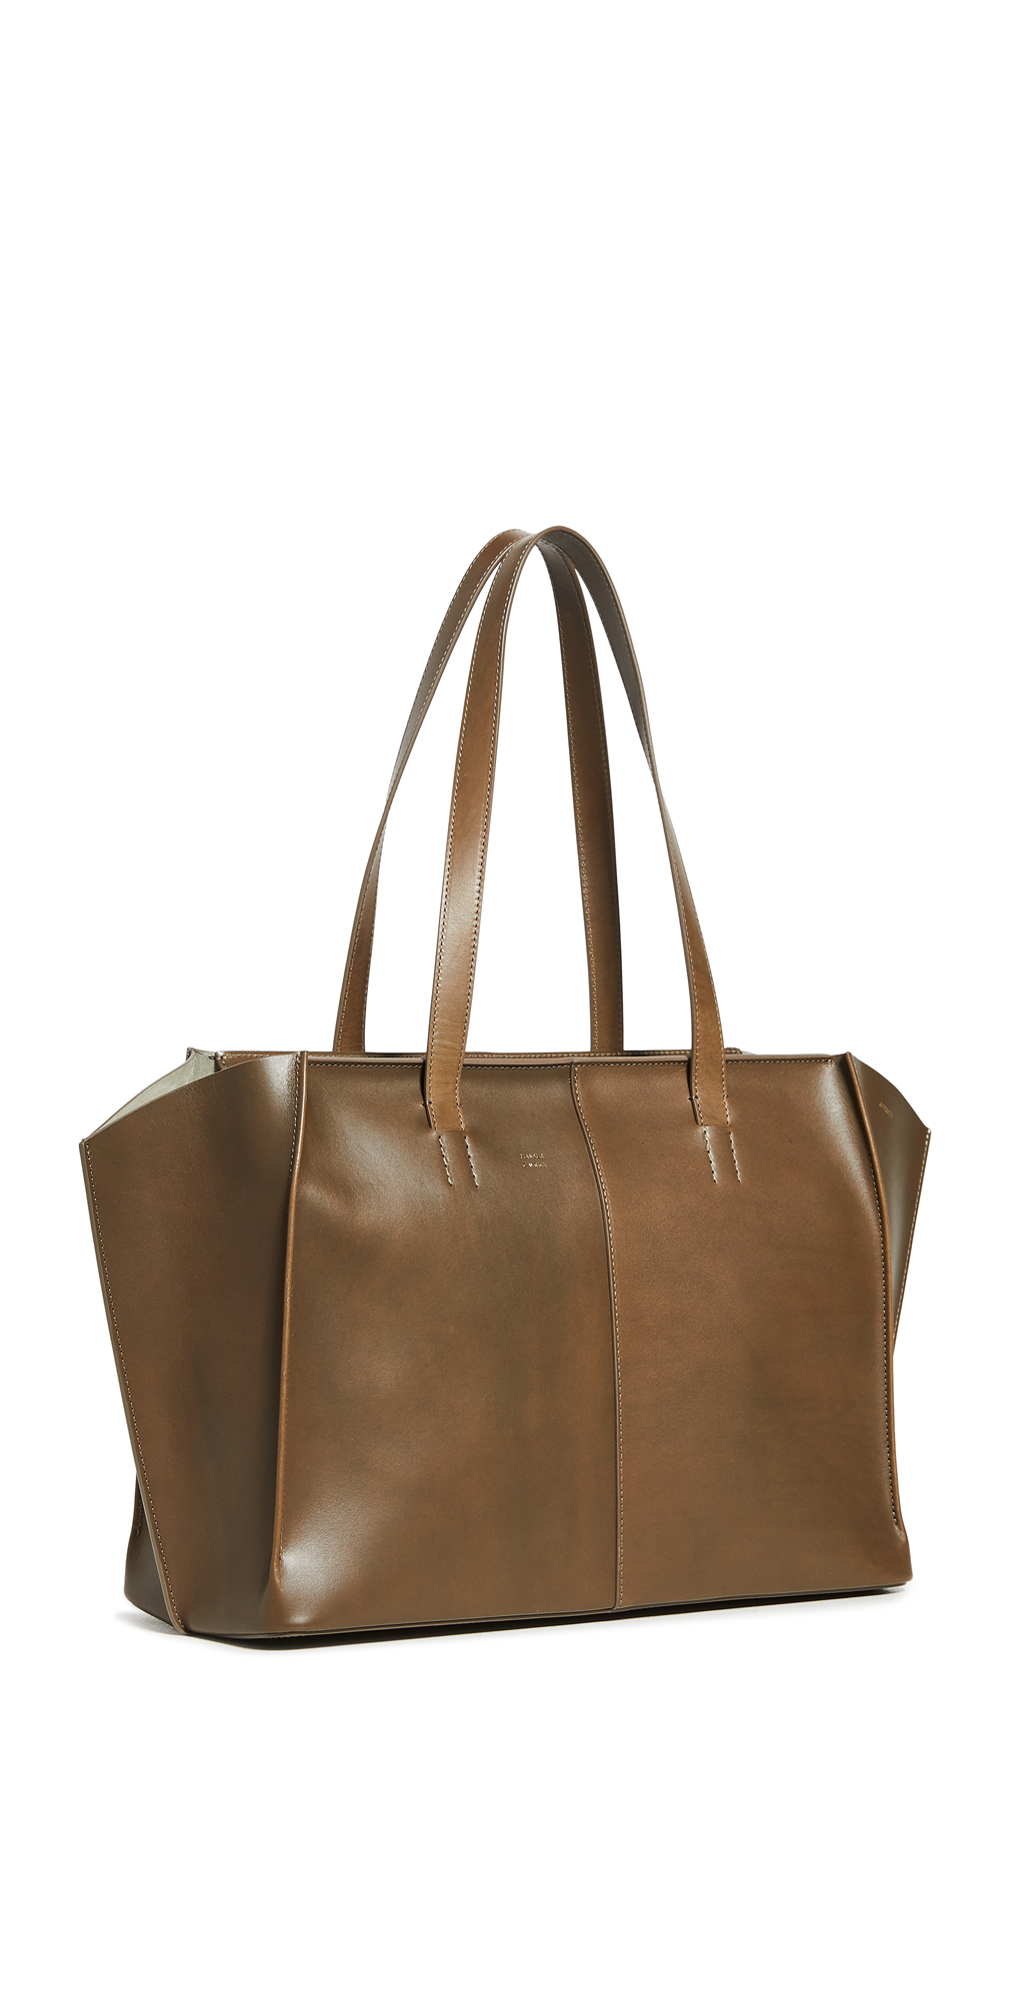 Mansur Gavriel Zip Multitude Tote Bag